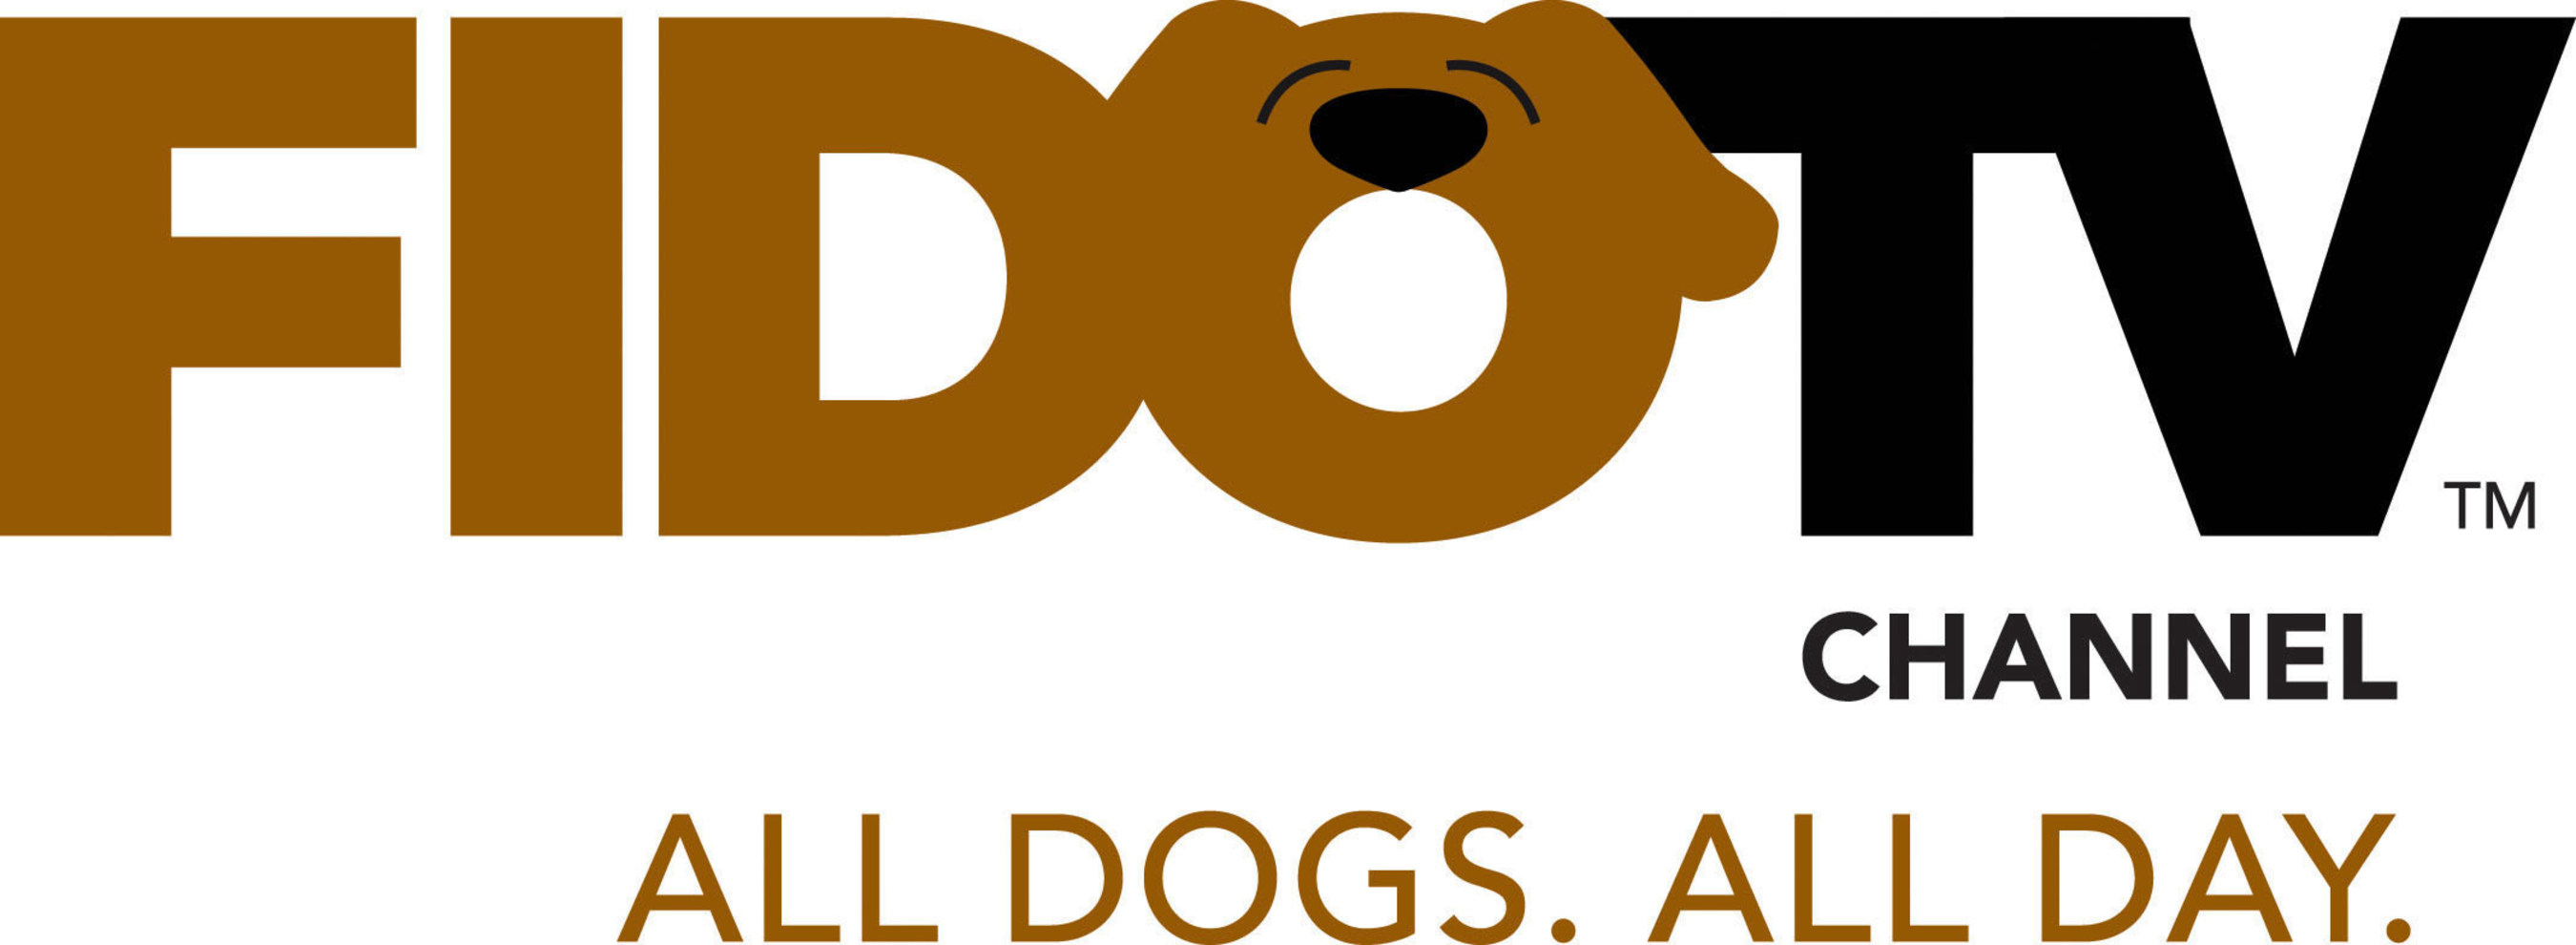 "FidoTV, the first television programming channel dedicated solely to dog lovers, launches ""All Dogs. All Day."" entertainment on DISH."